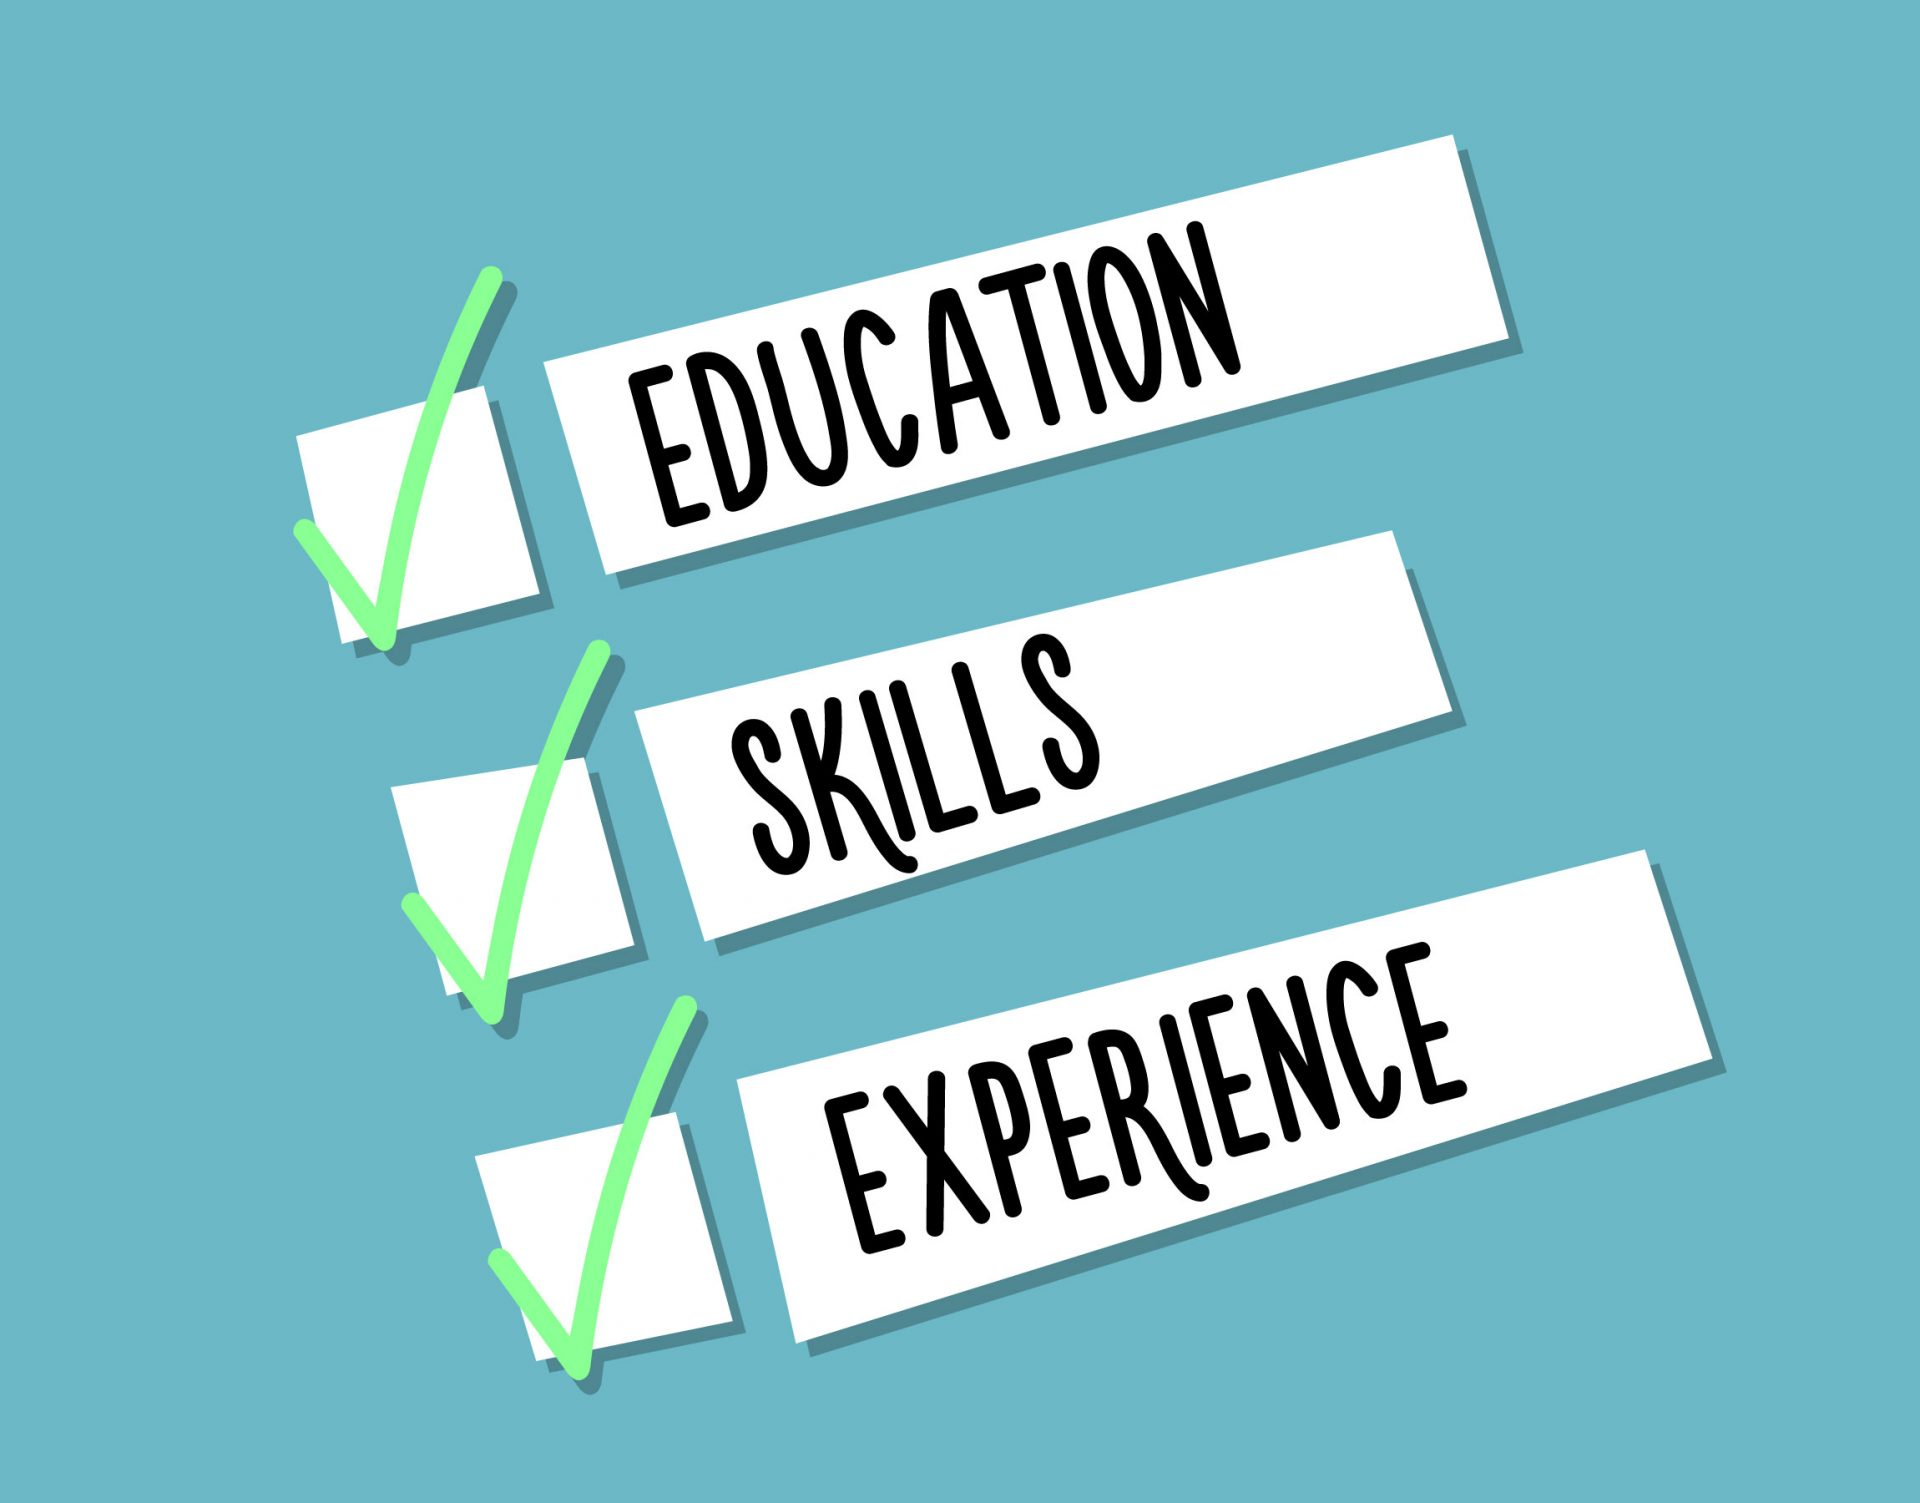 Education, Skills, Experience